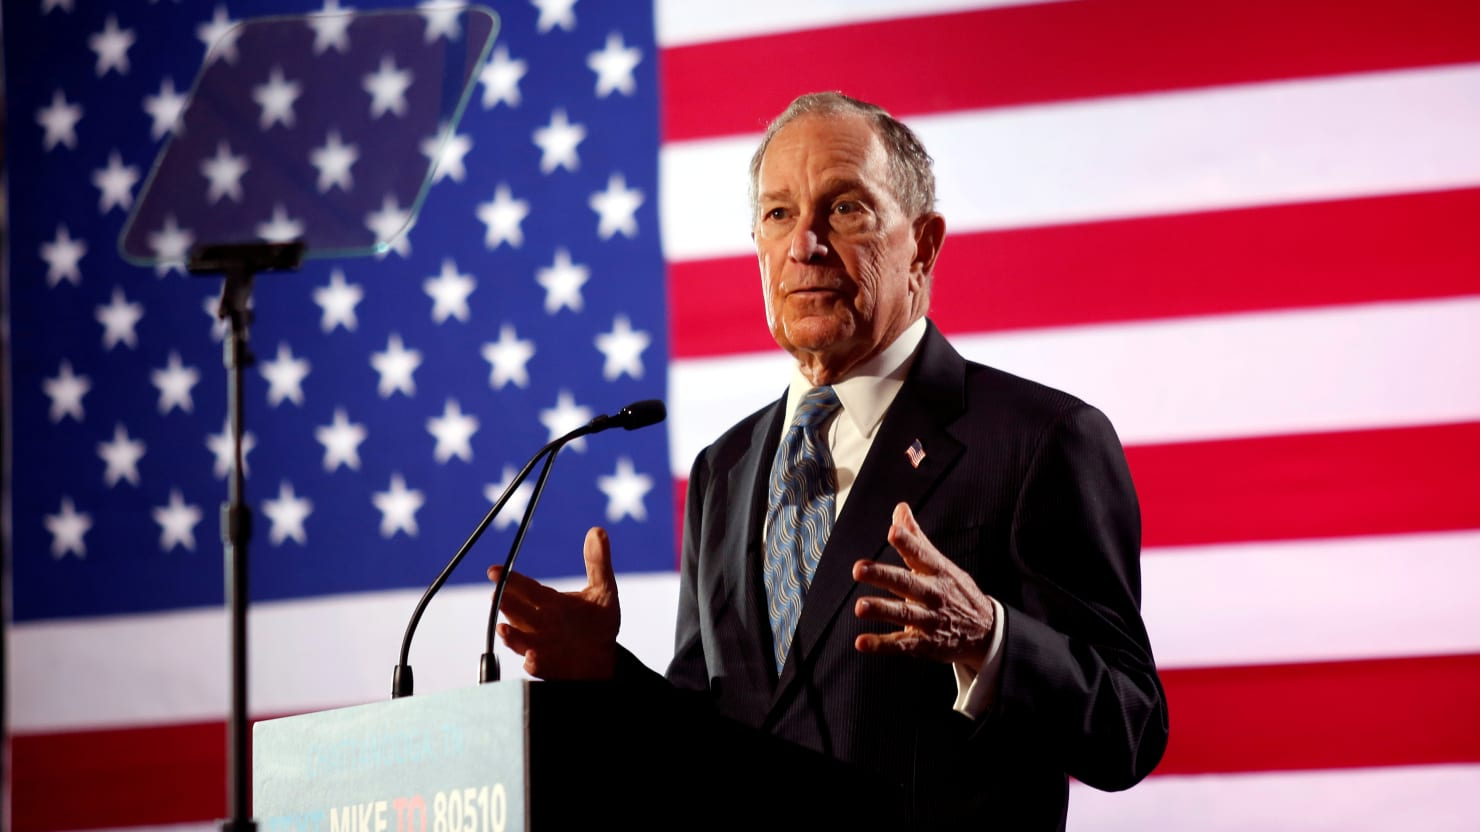 Bloomberg Makes It Into Next Democratic Debate After Surge in the Polls